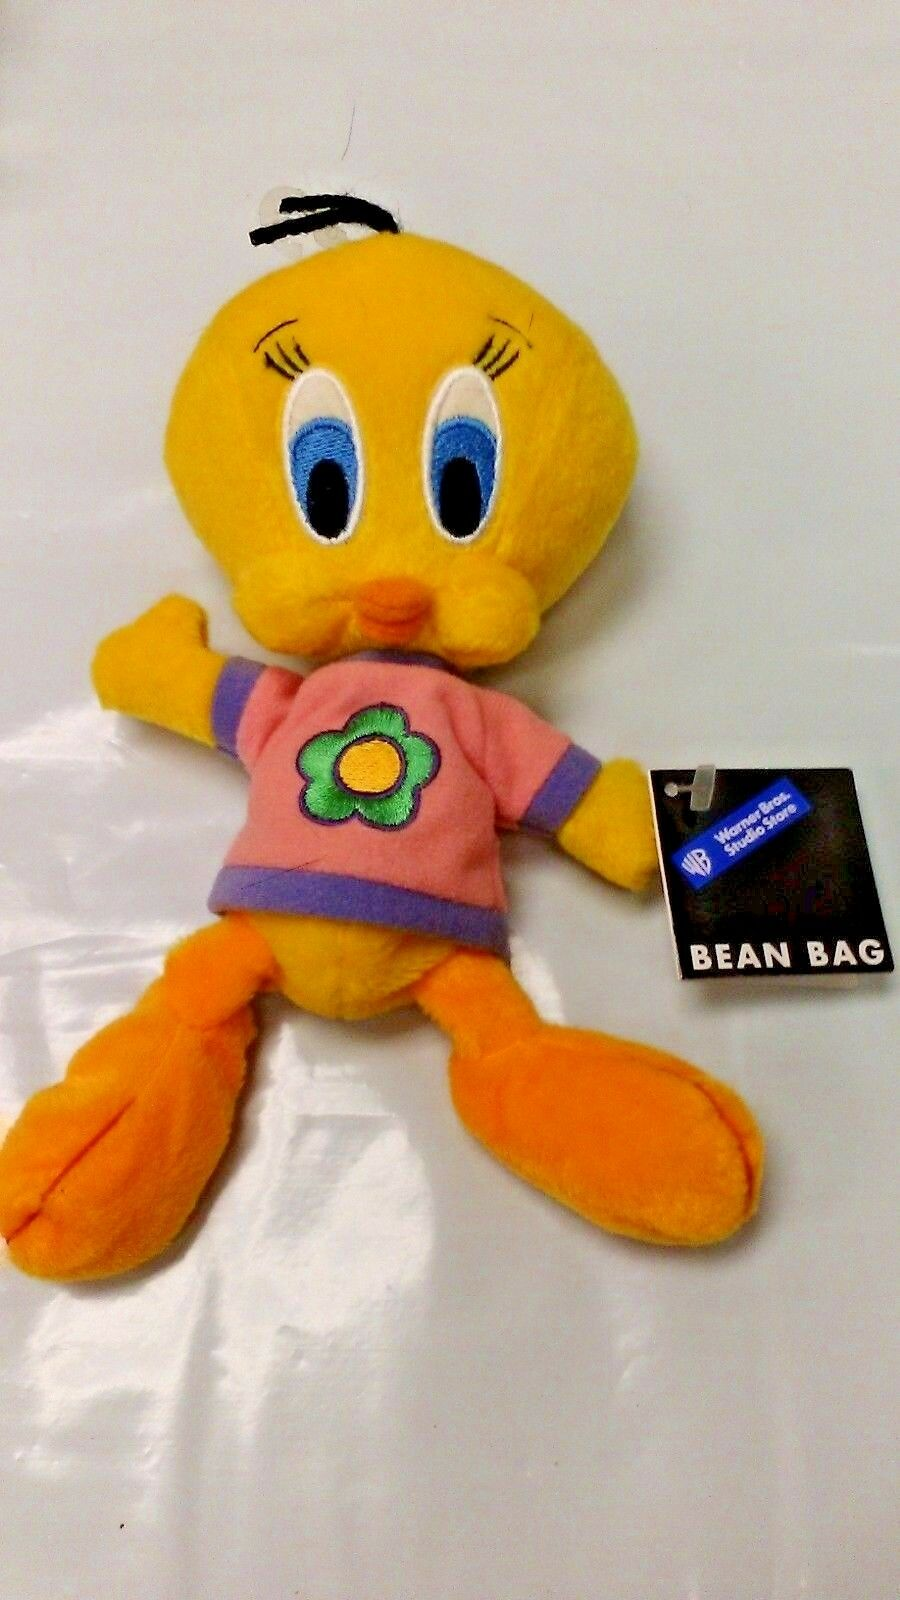 WARNER STORE BROTHERS STUDIO STORE WARNER TWEETY FLOWER SHIRT BEAN BAG NEW WITH TAG OFFICIAL 78e037